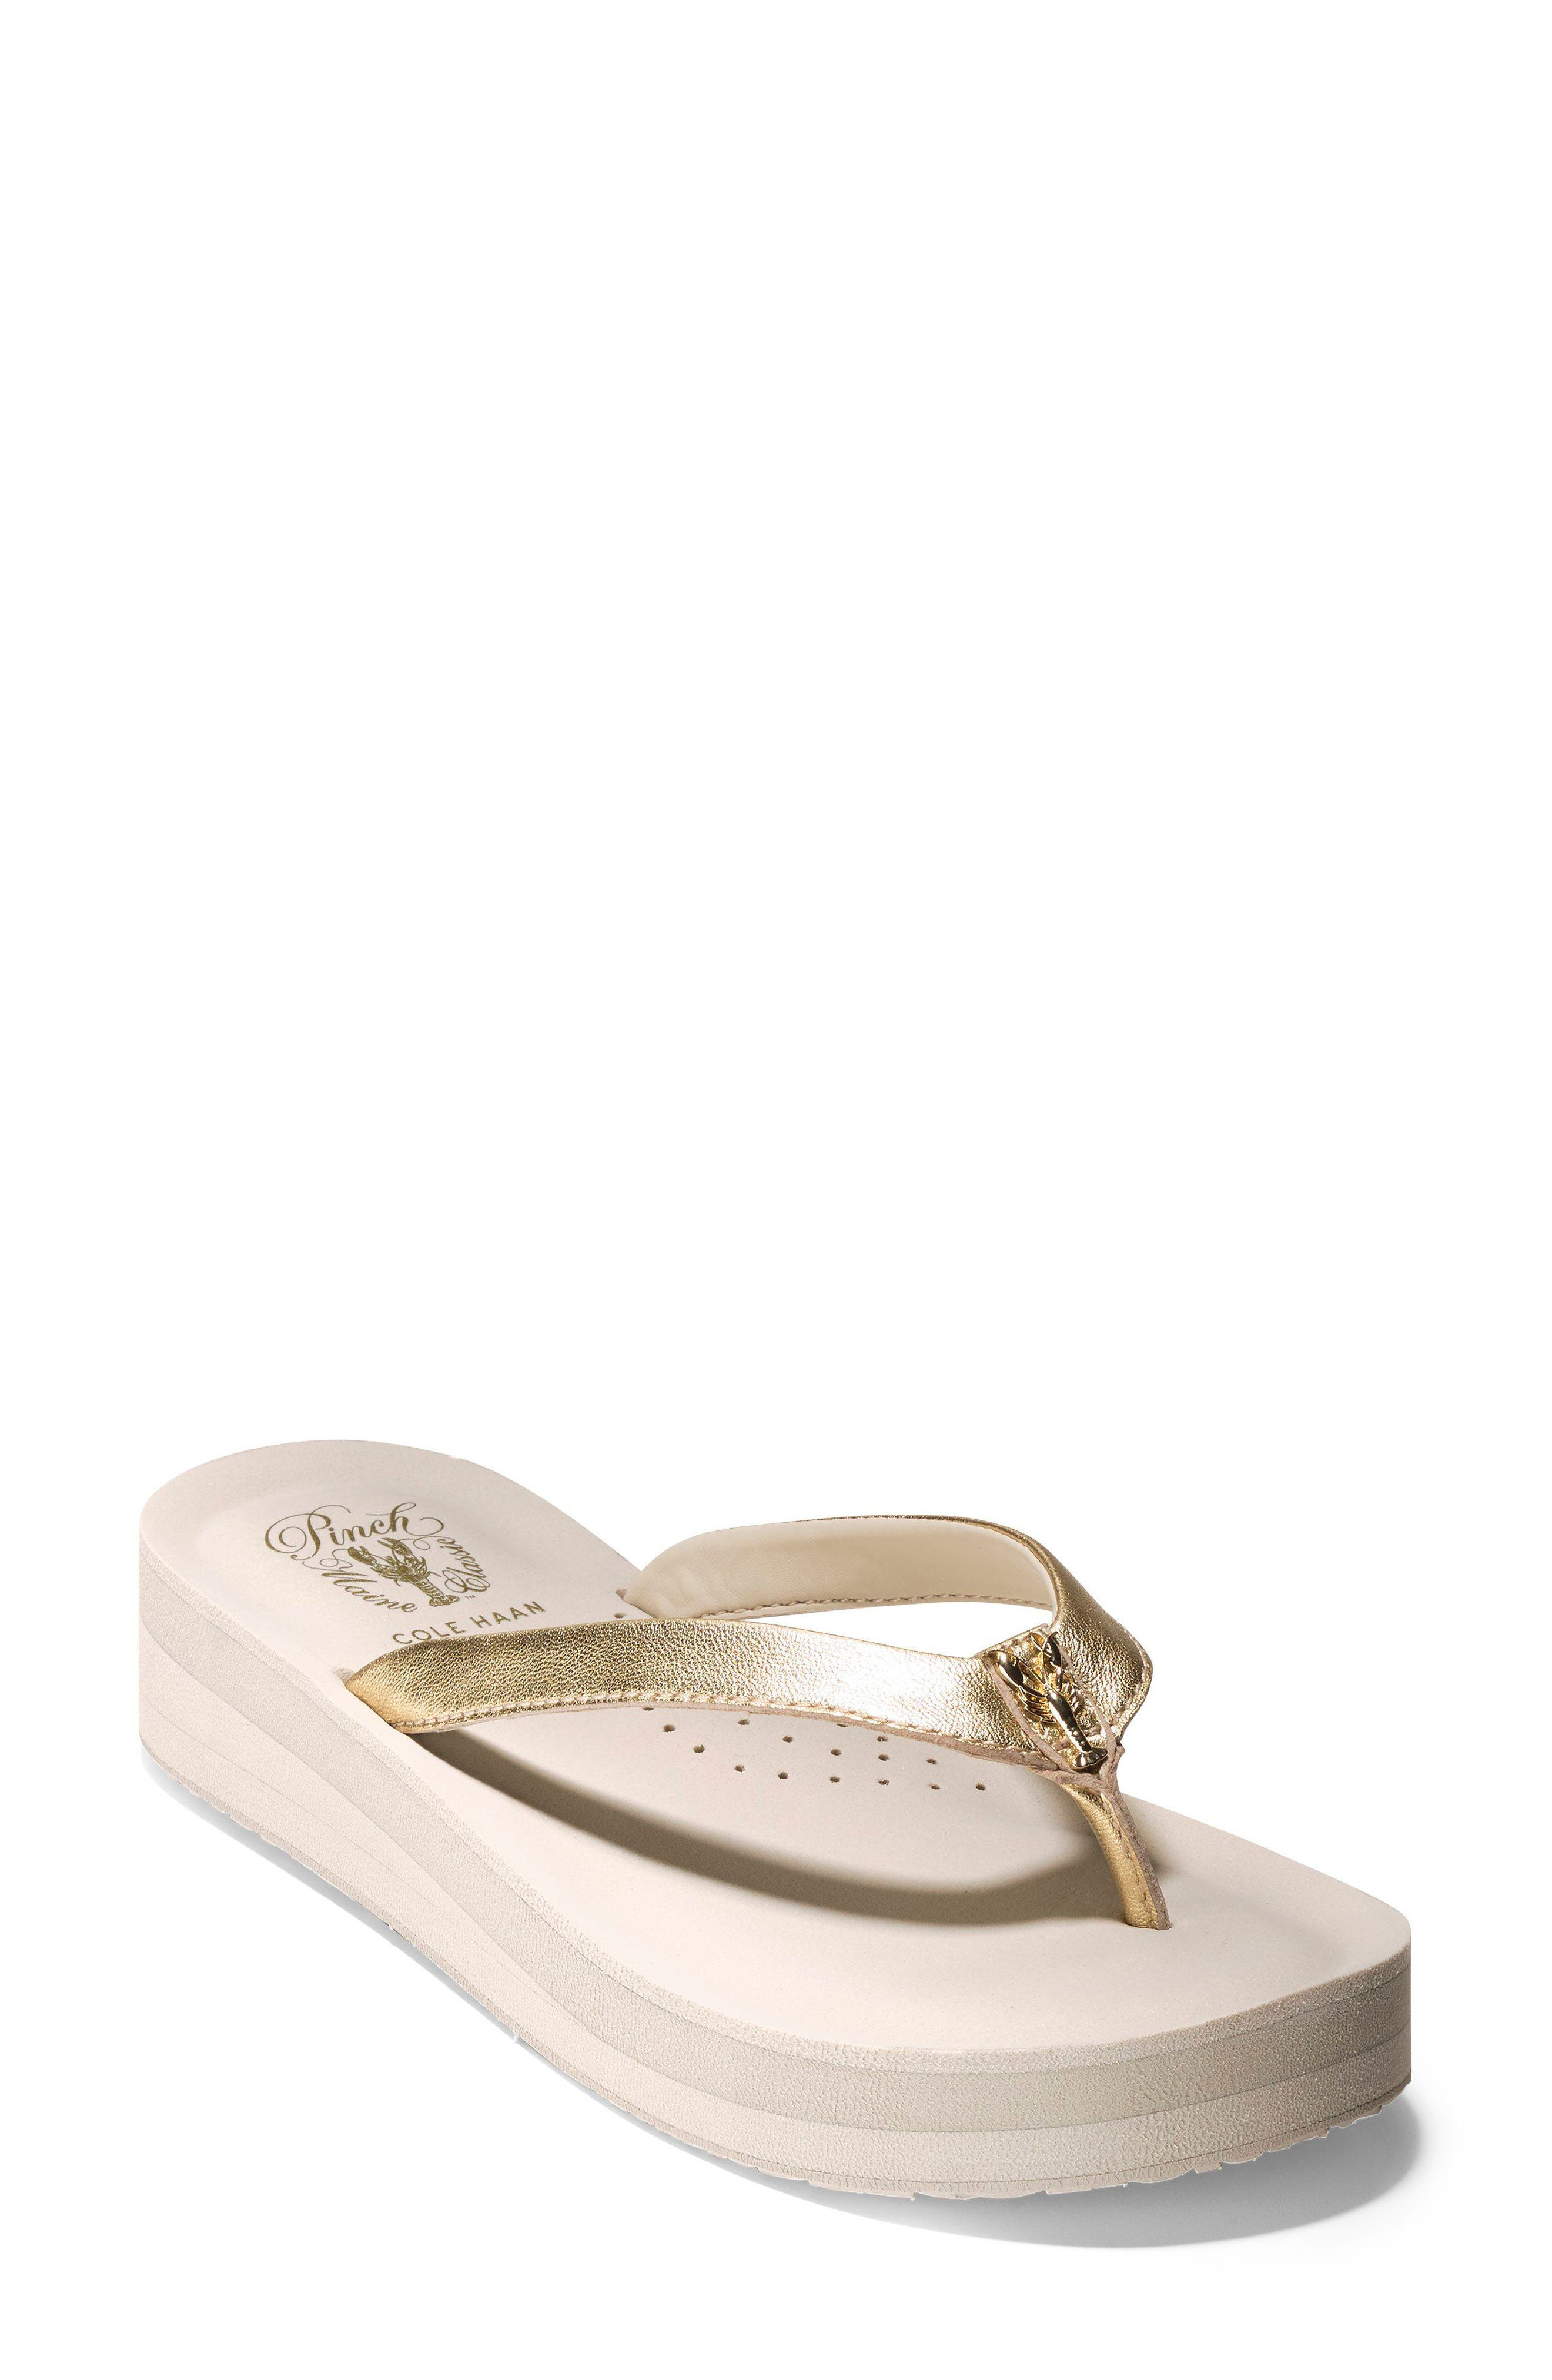 Lobster Wedge Flip Flop,                         Main,                         color, Gold/ Pumice Stone Leather